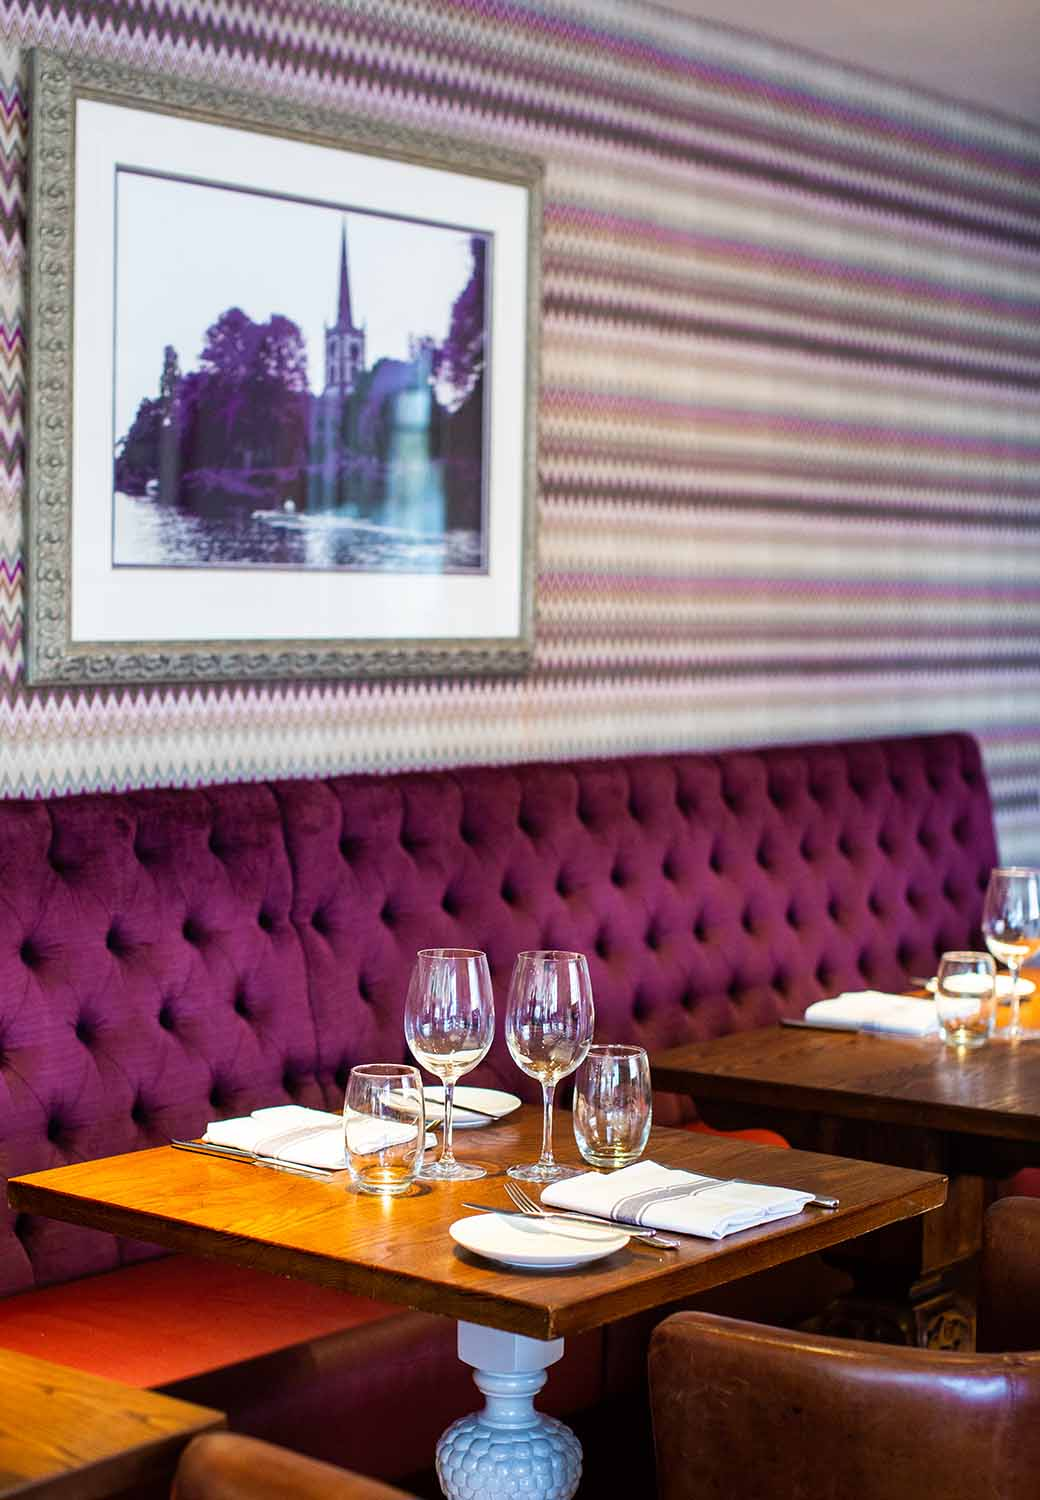 Fine dining at The Arden Hotel in Stratford-upon-Avon